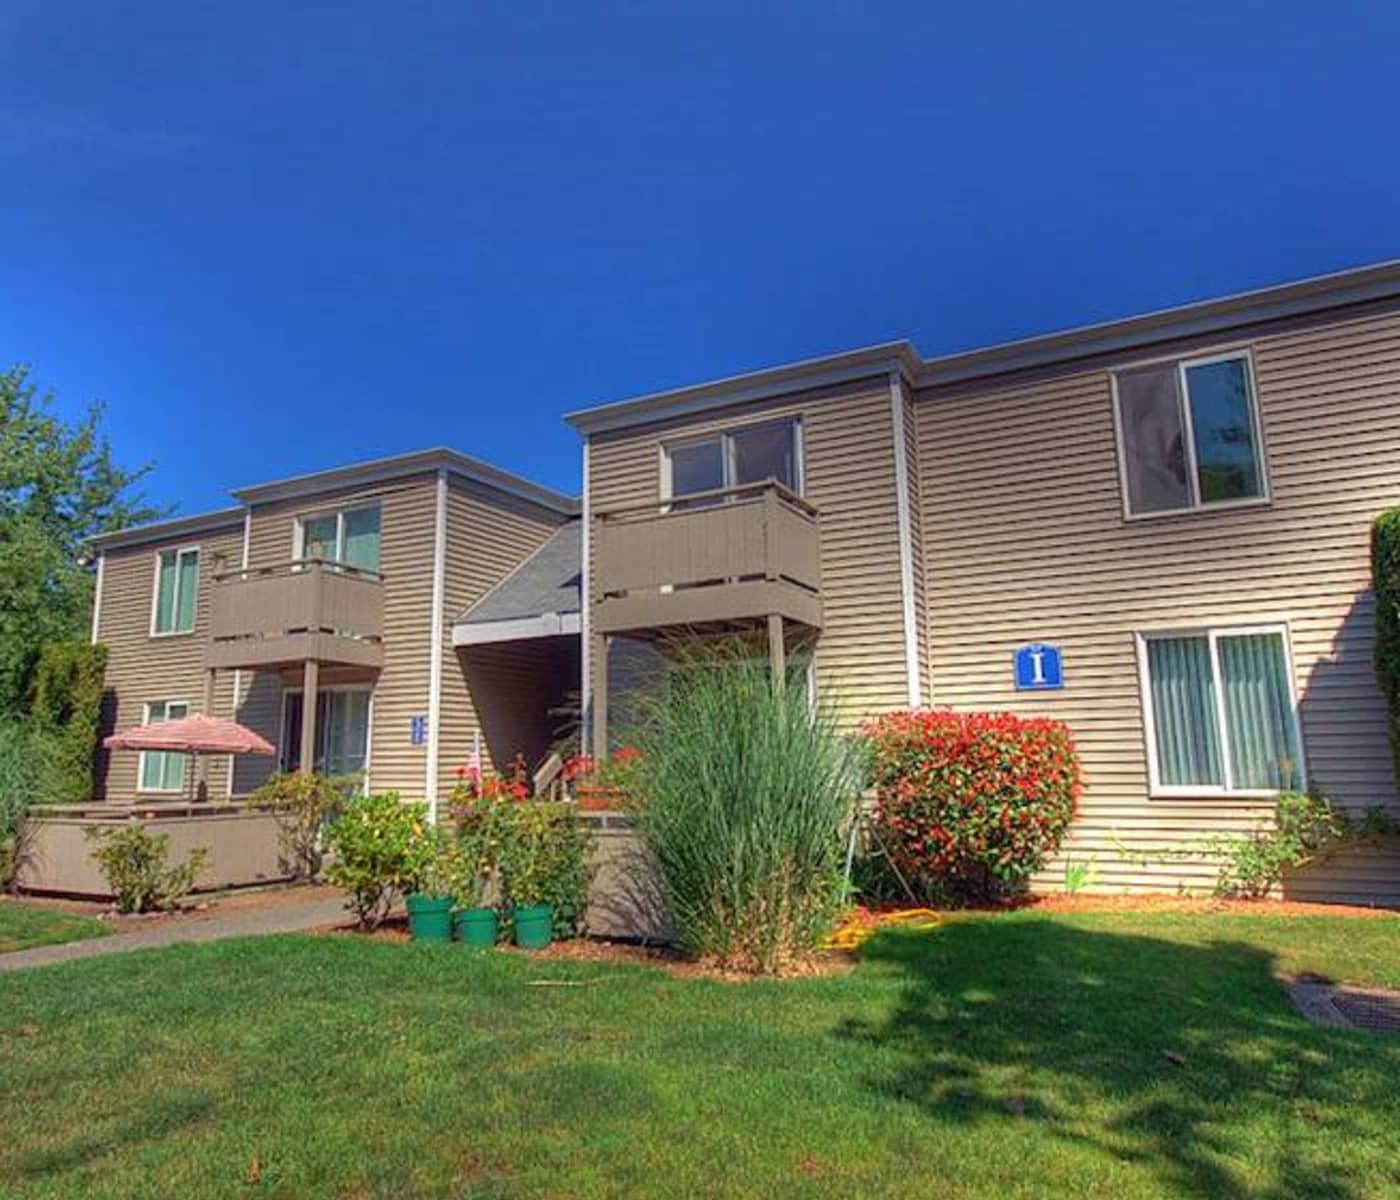 Exterior view of Cottage Bay Apartment Homes in Bremerton, WA